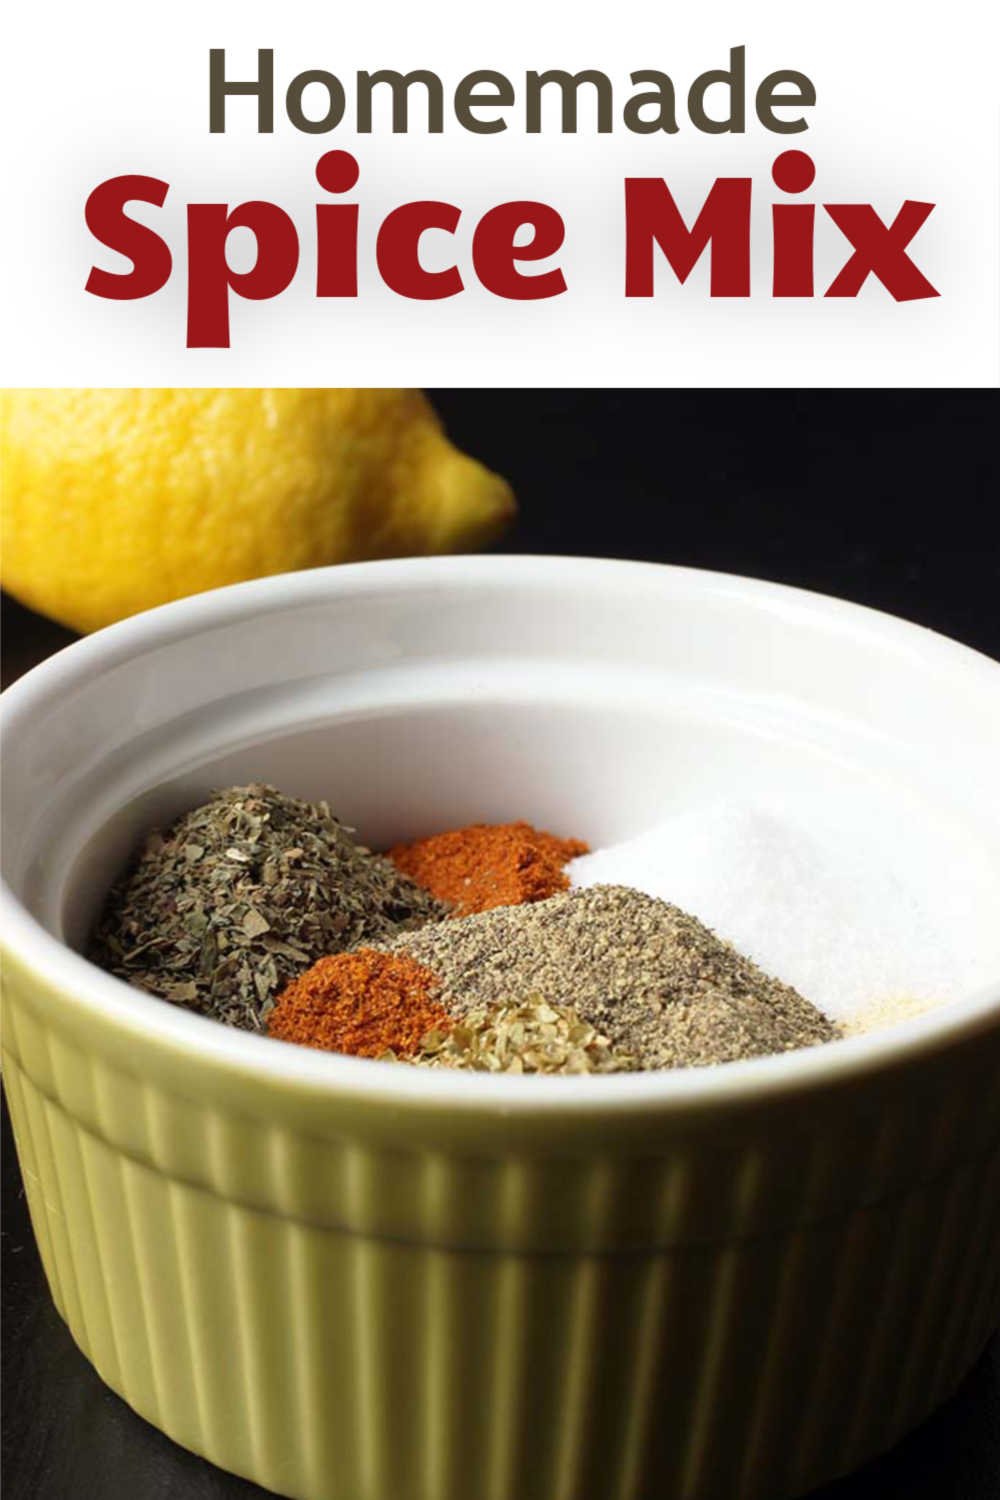 A bowl of Spice mix ingredients